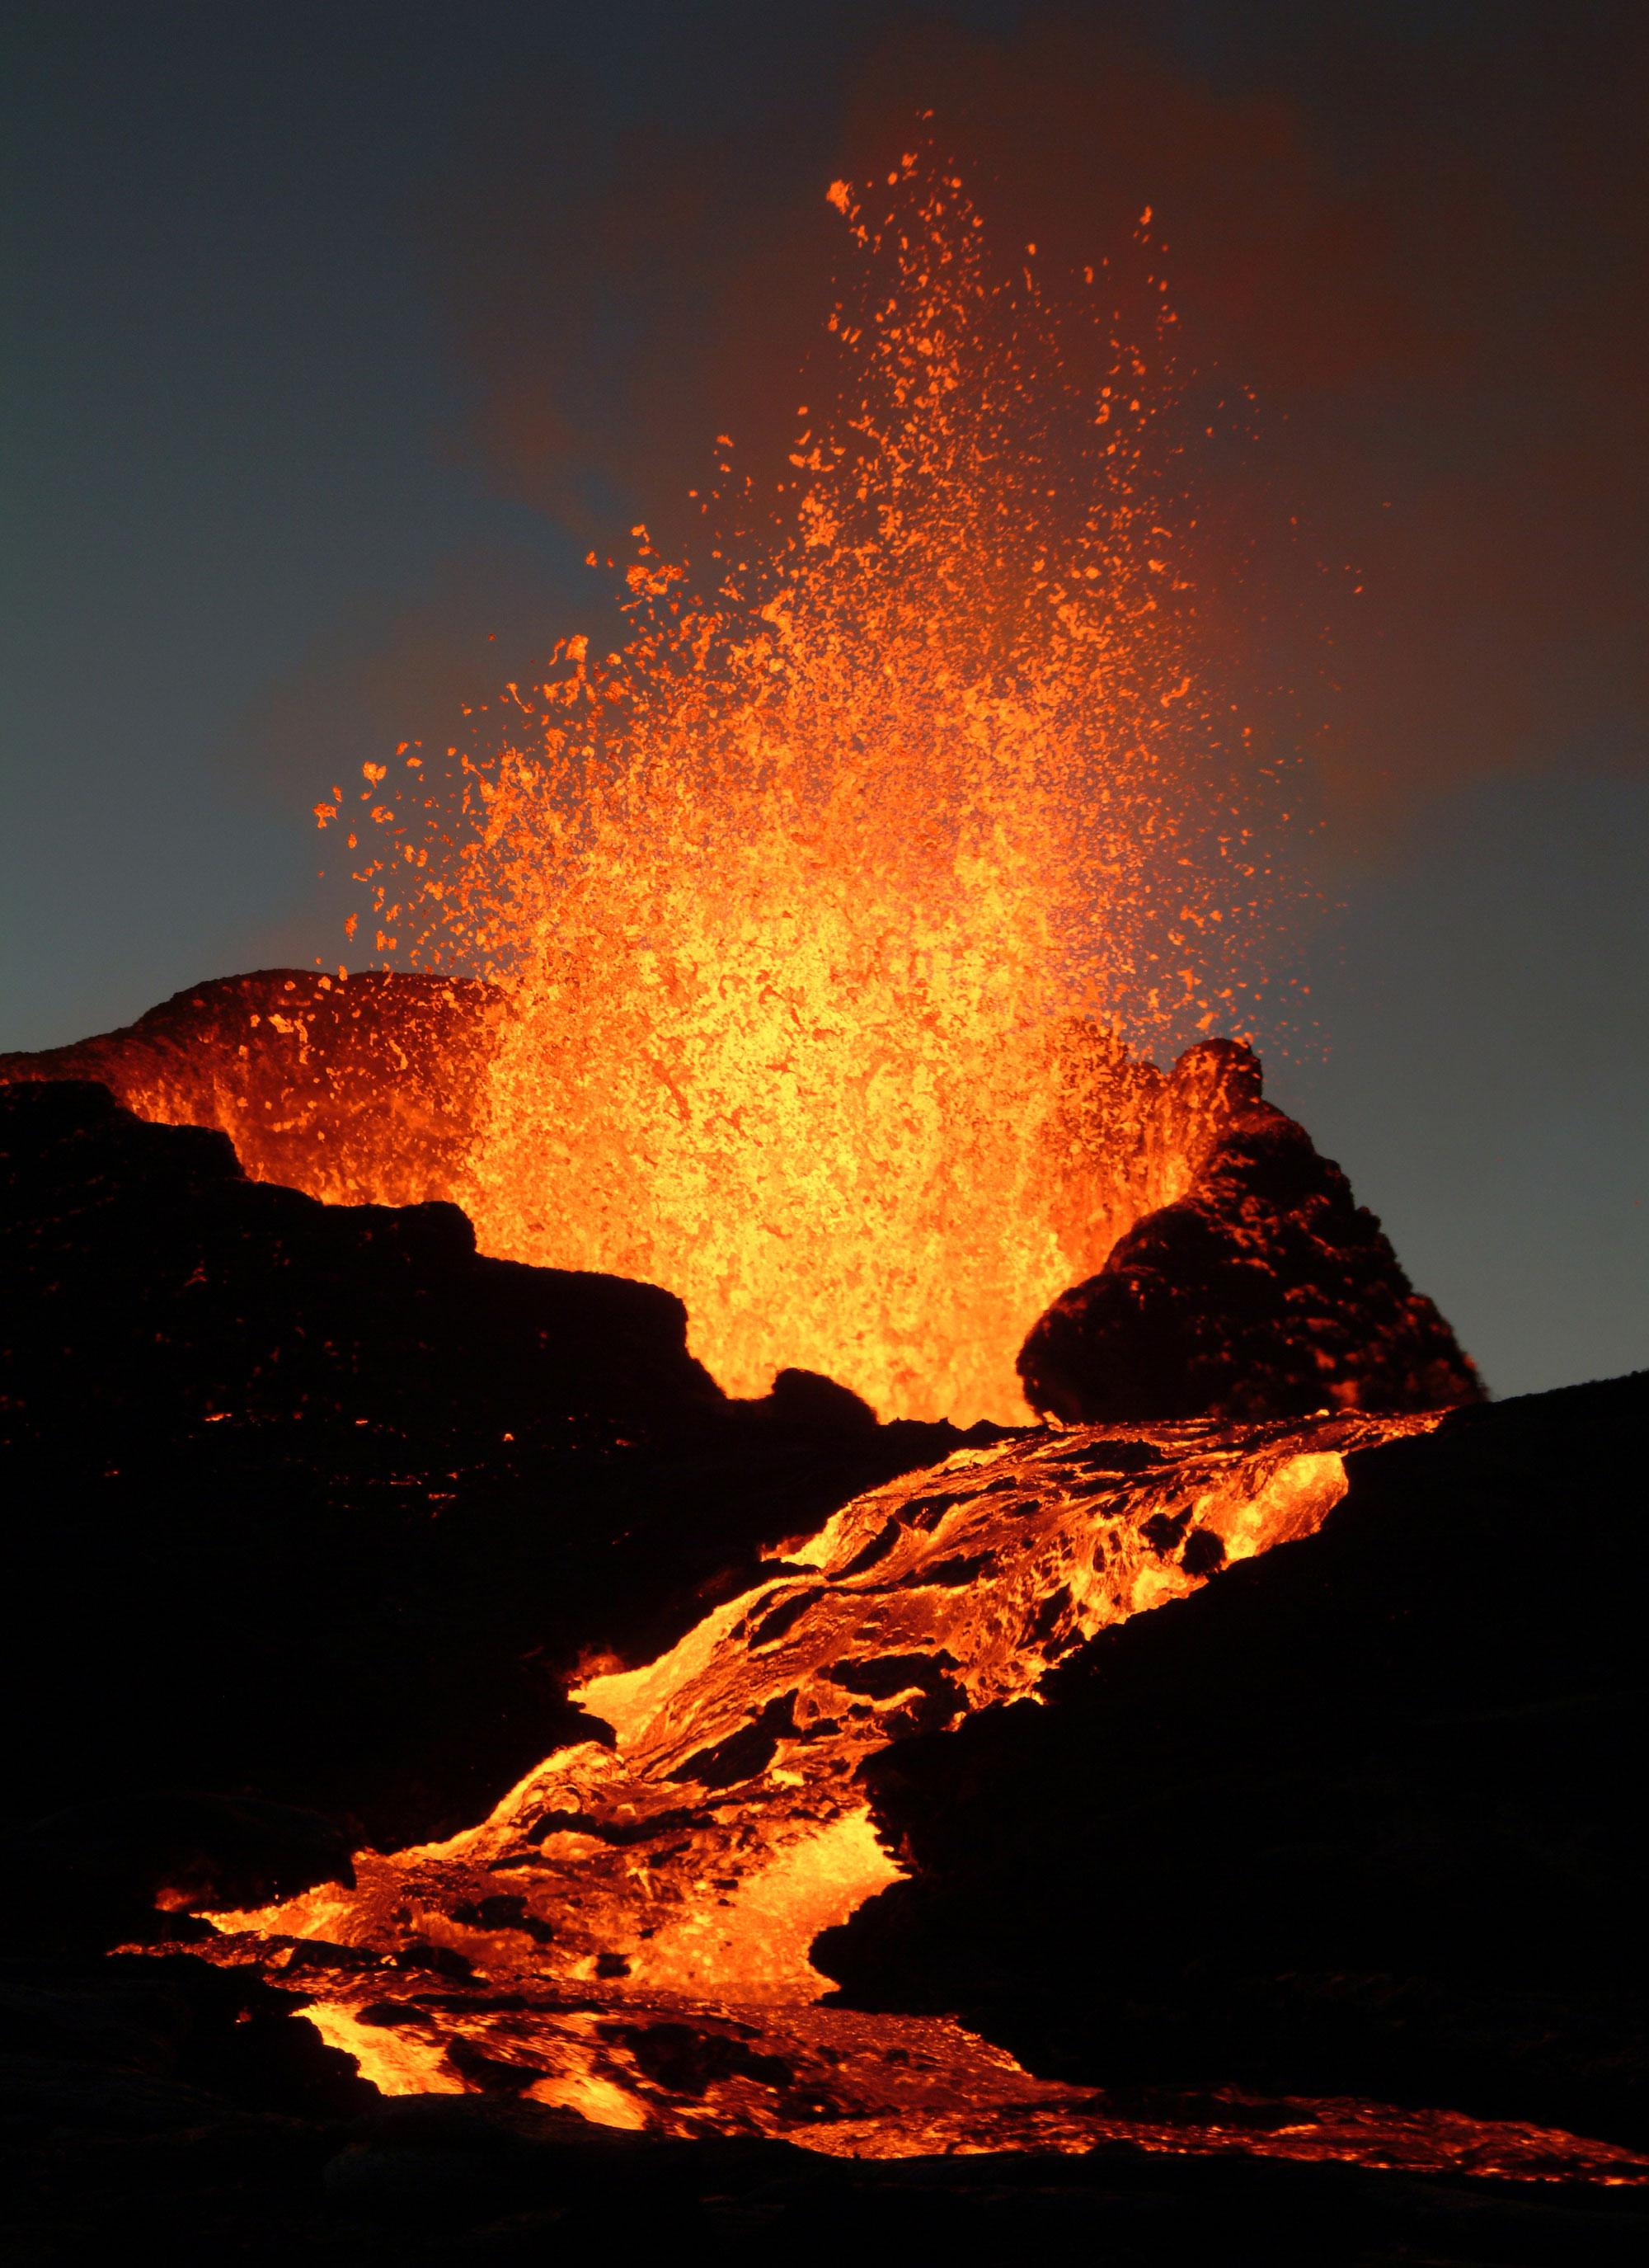 Volcanic Magma Wallpapers High Quality